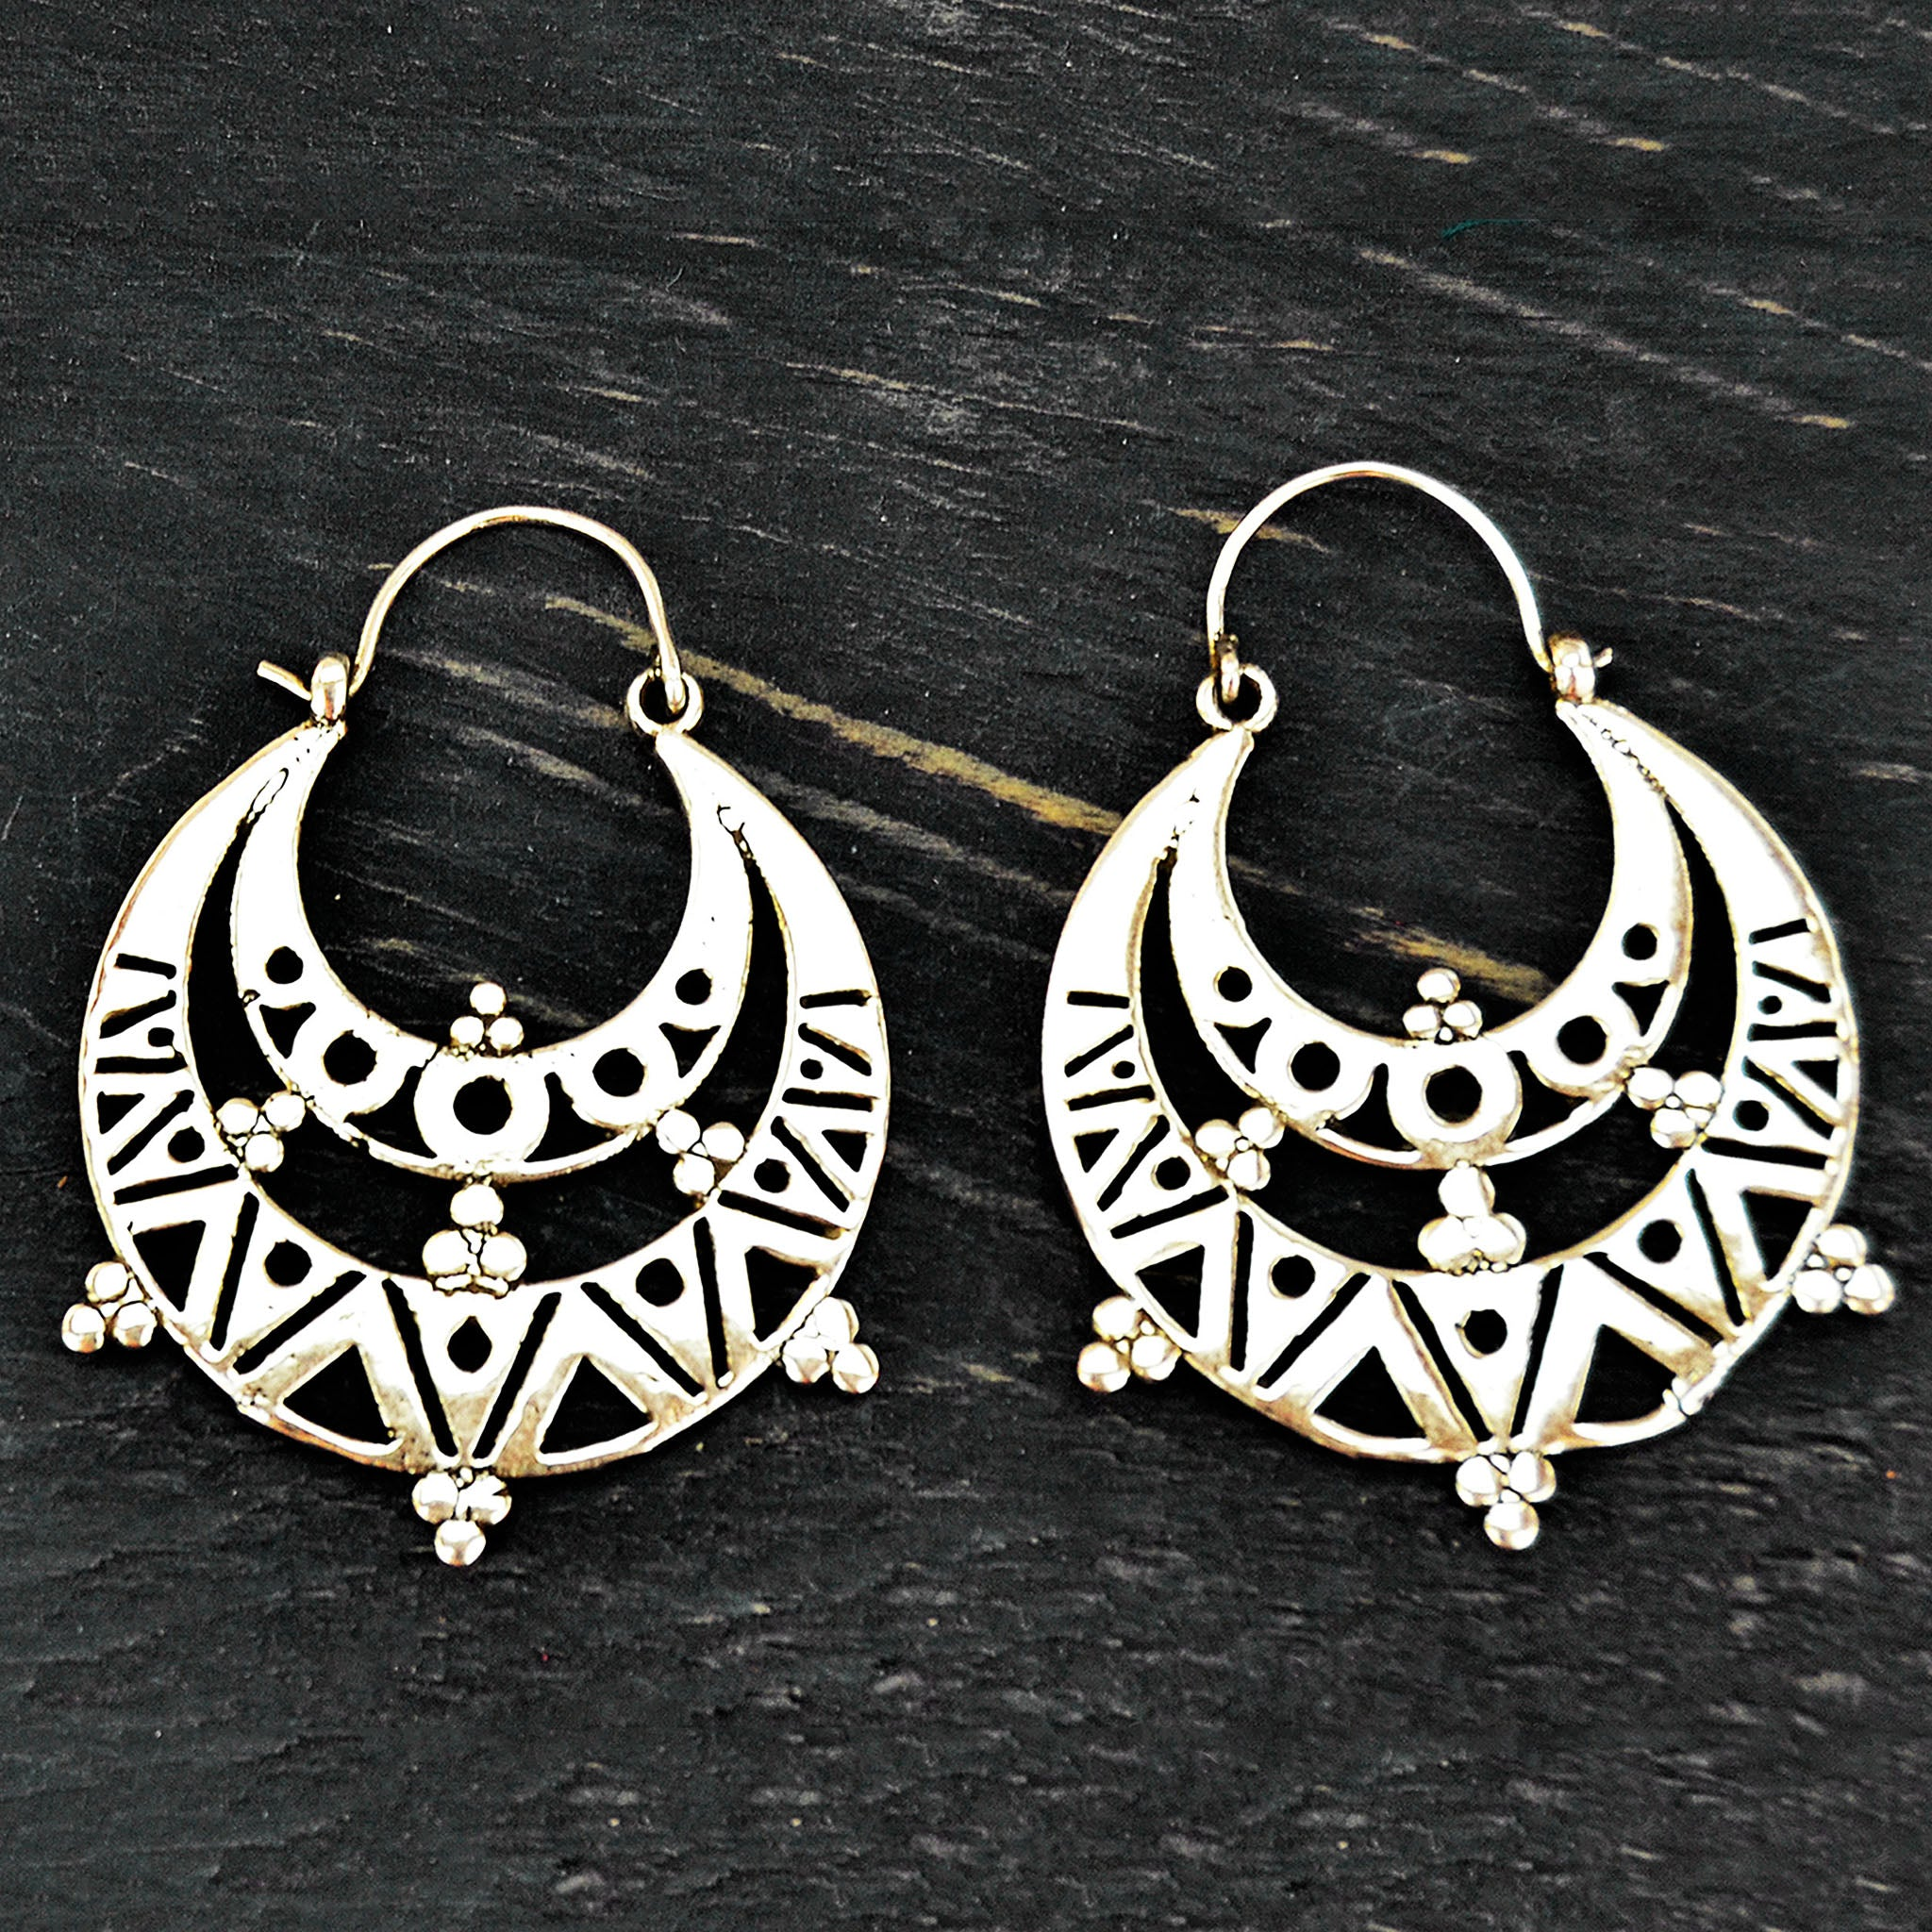 Silver aztec hoop earrings wuth geometric motifs